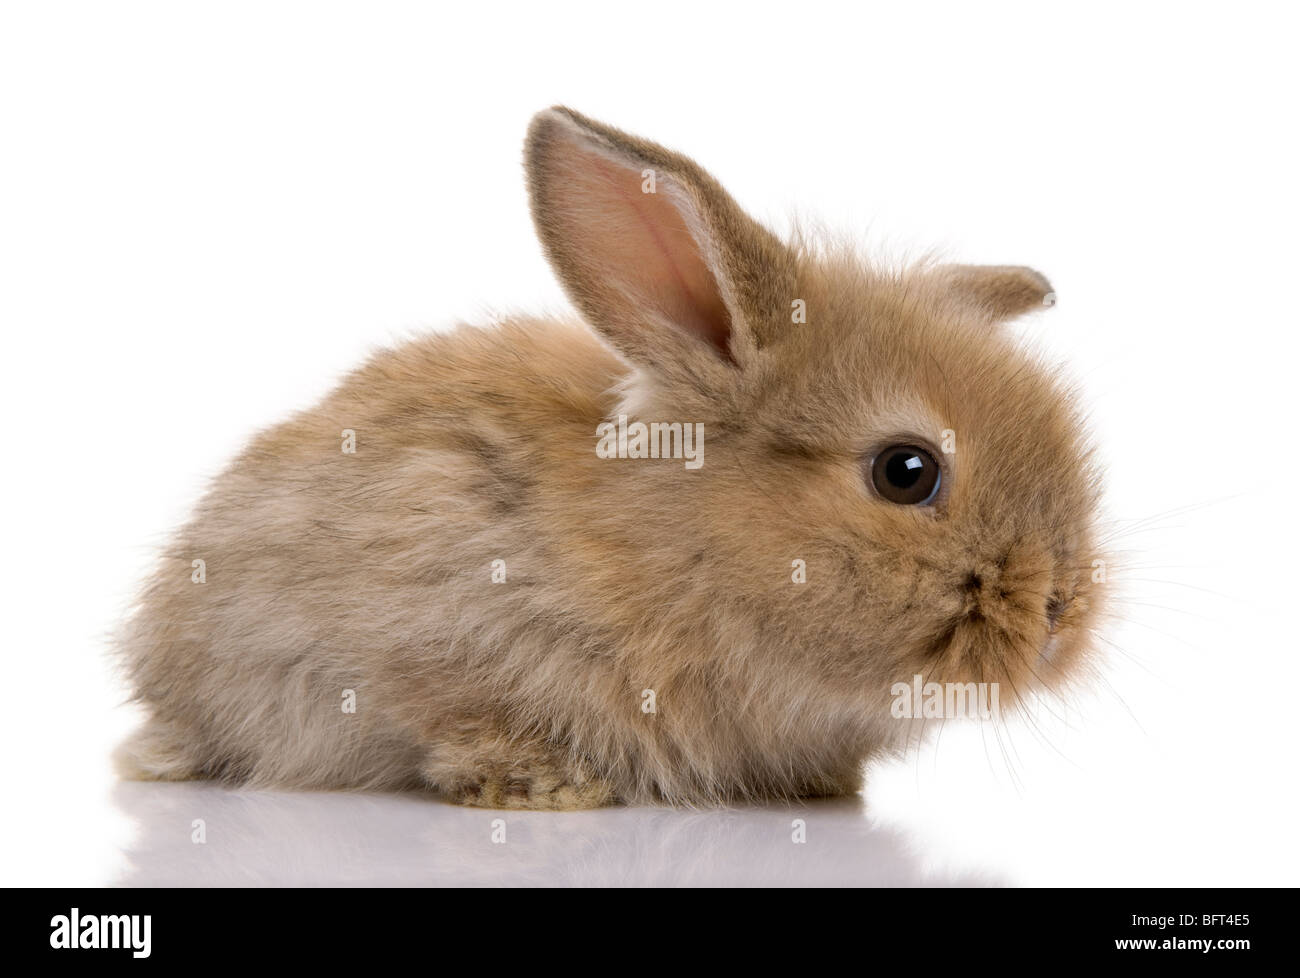 Brown baby rabbit in front of a white background, studio shot - Stock Image